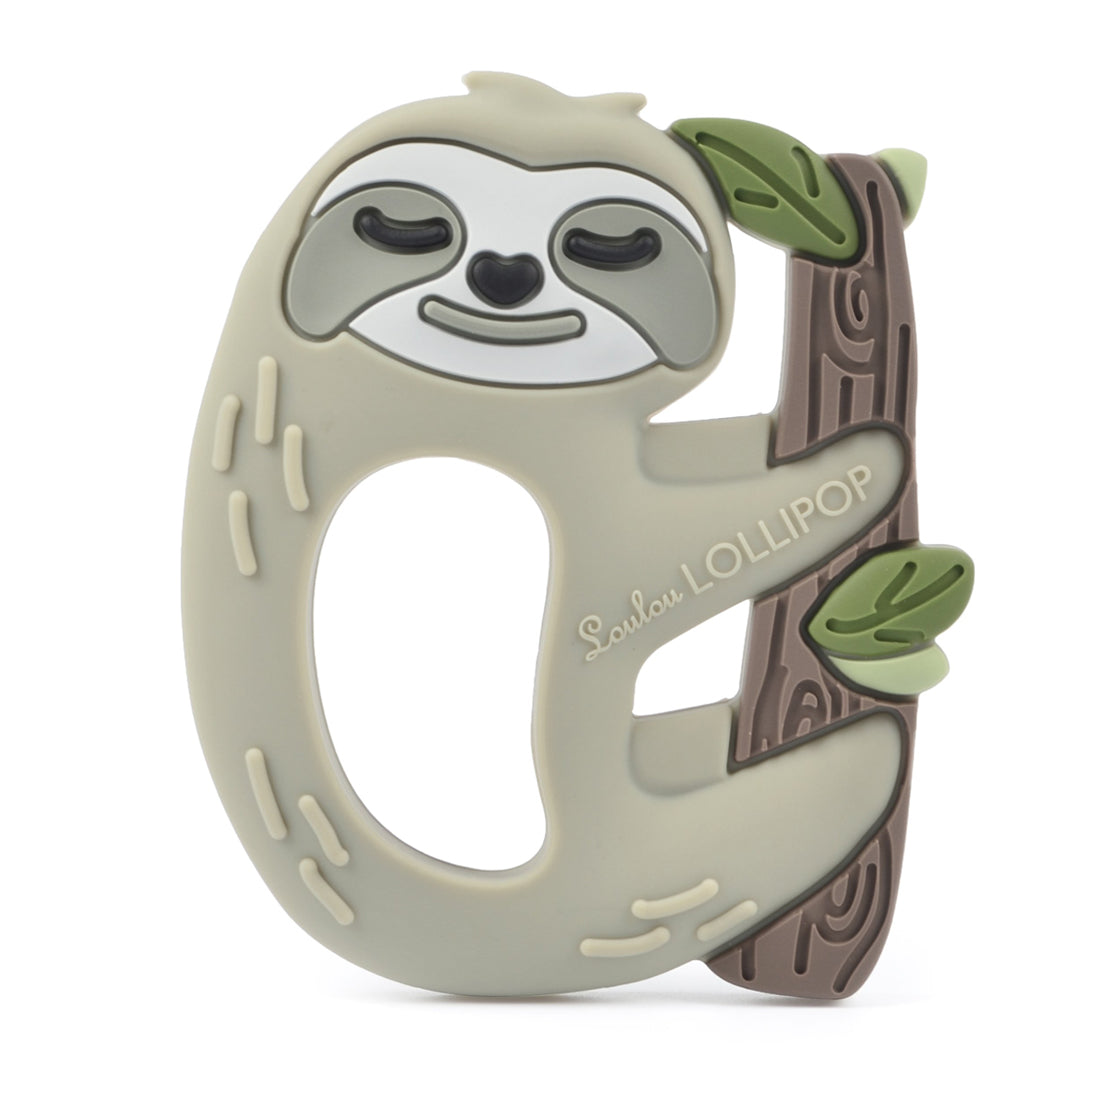 Loulou Lollipop Silicone Baby Teether Sloth